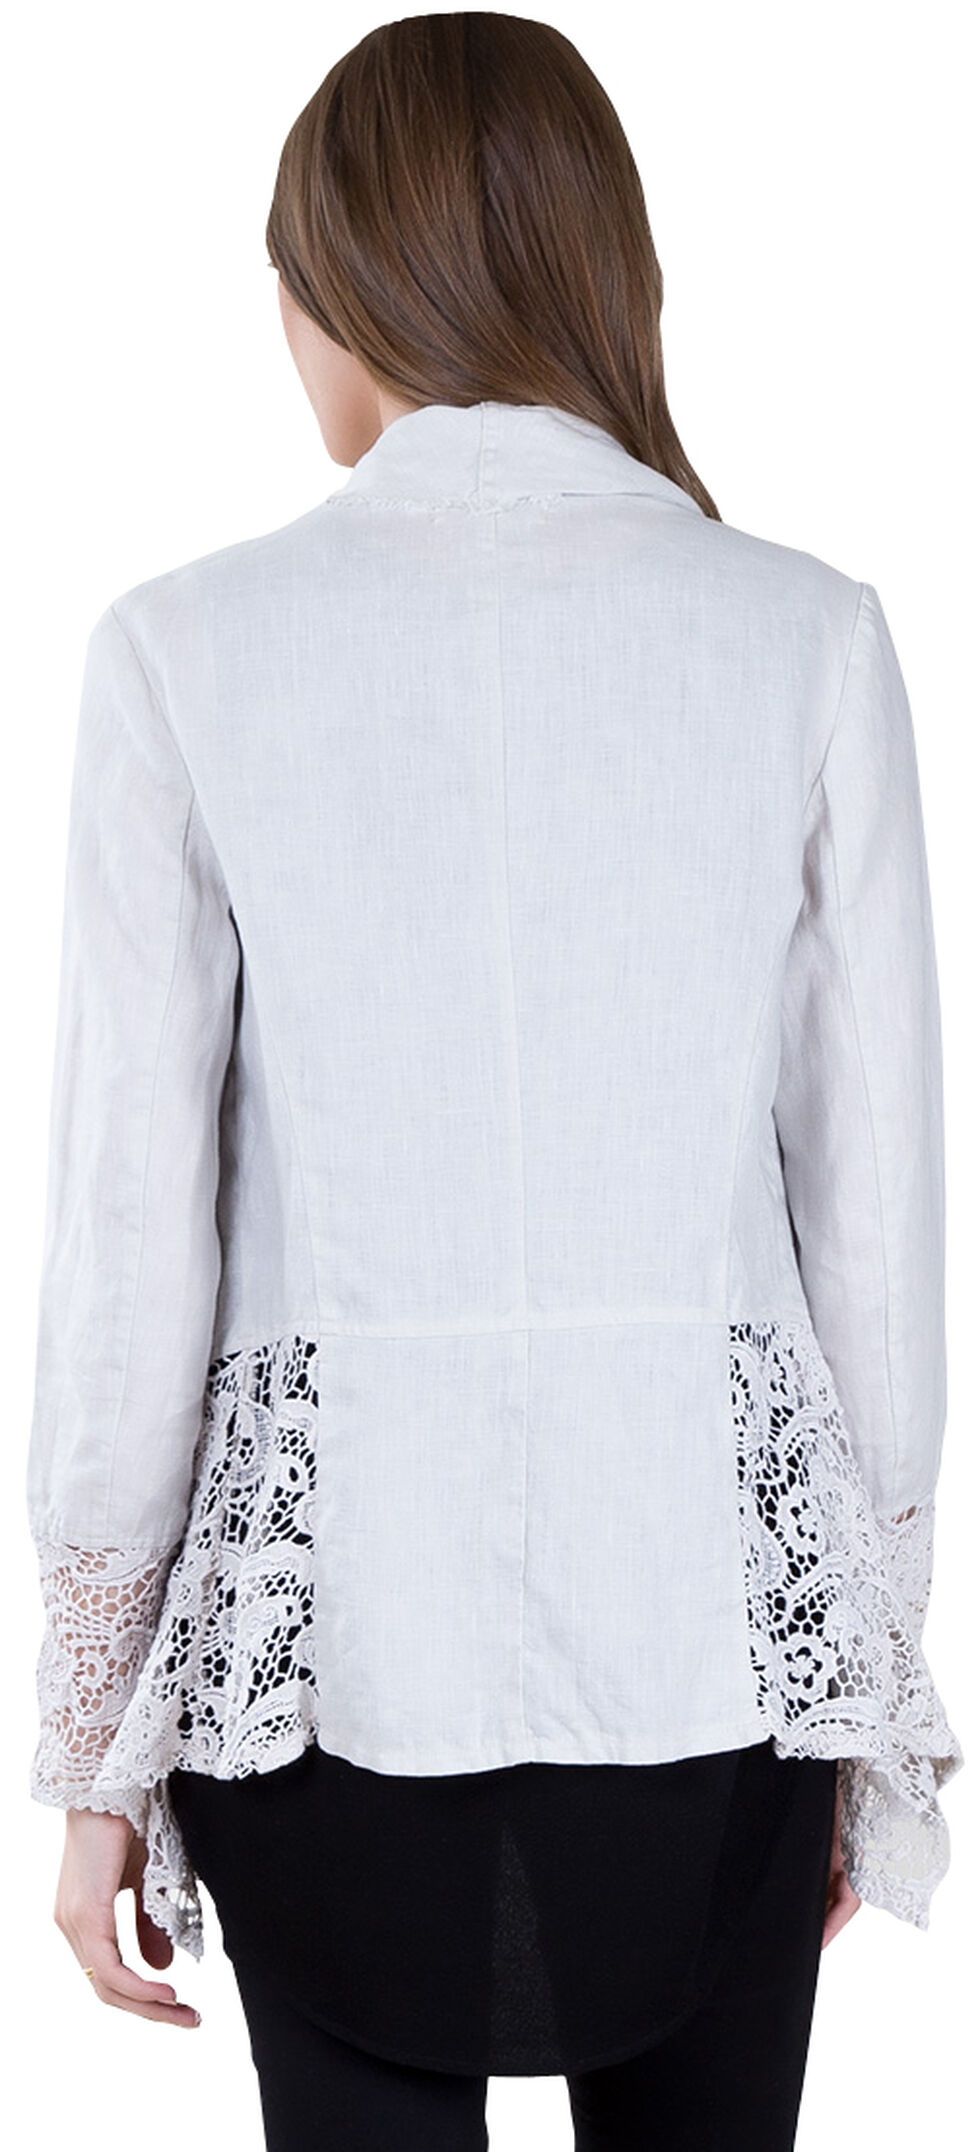 Black Swan Women's Aysel Jacket, White, hi-res